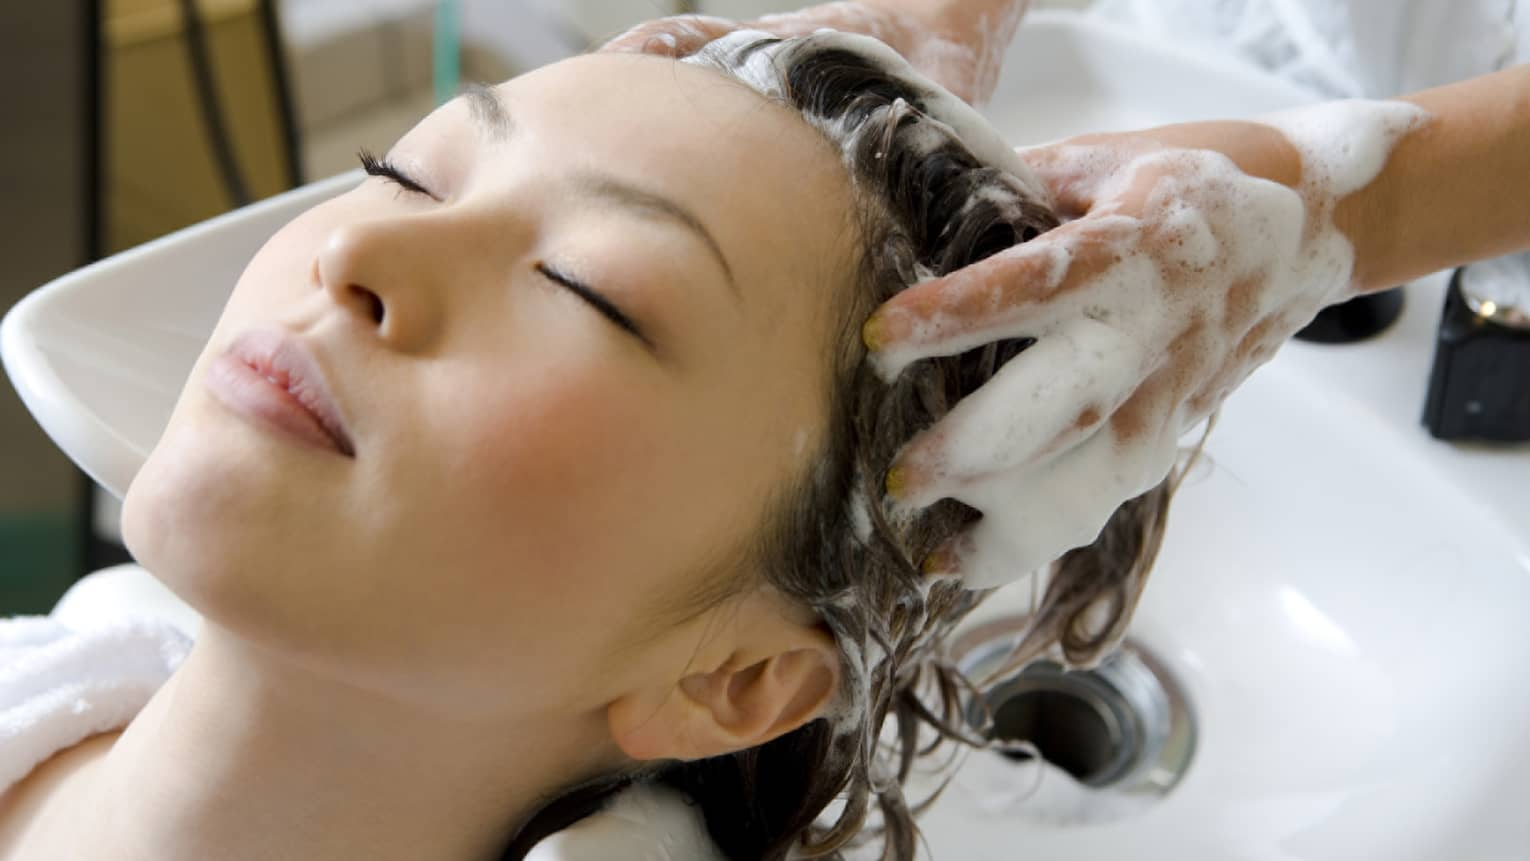 Woman closes eye and leans back against sink as hands massage shampoo into her scalp